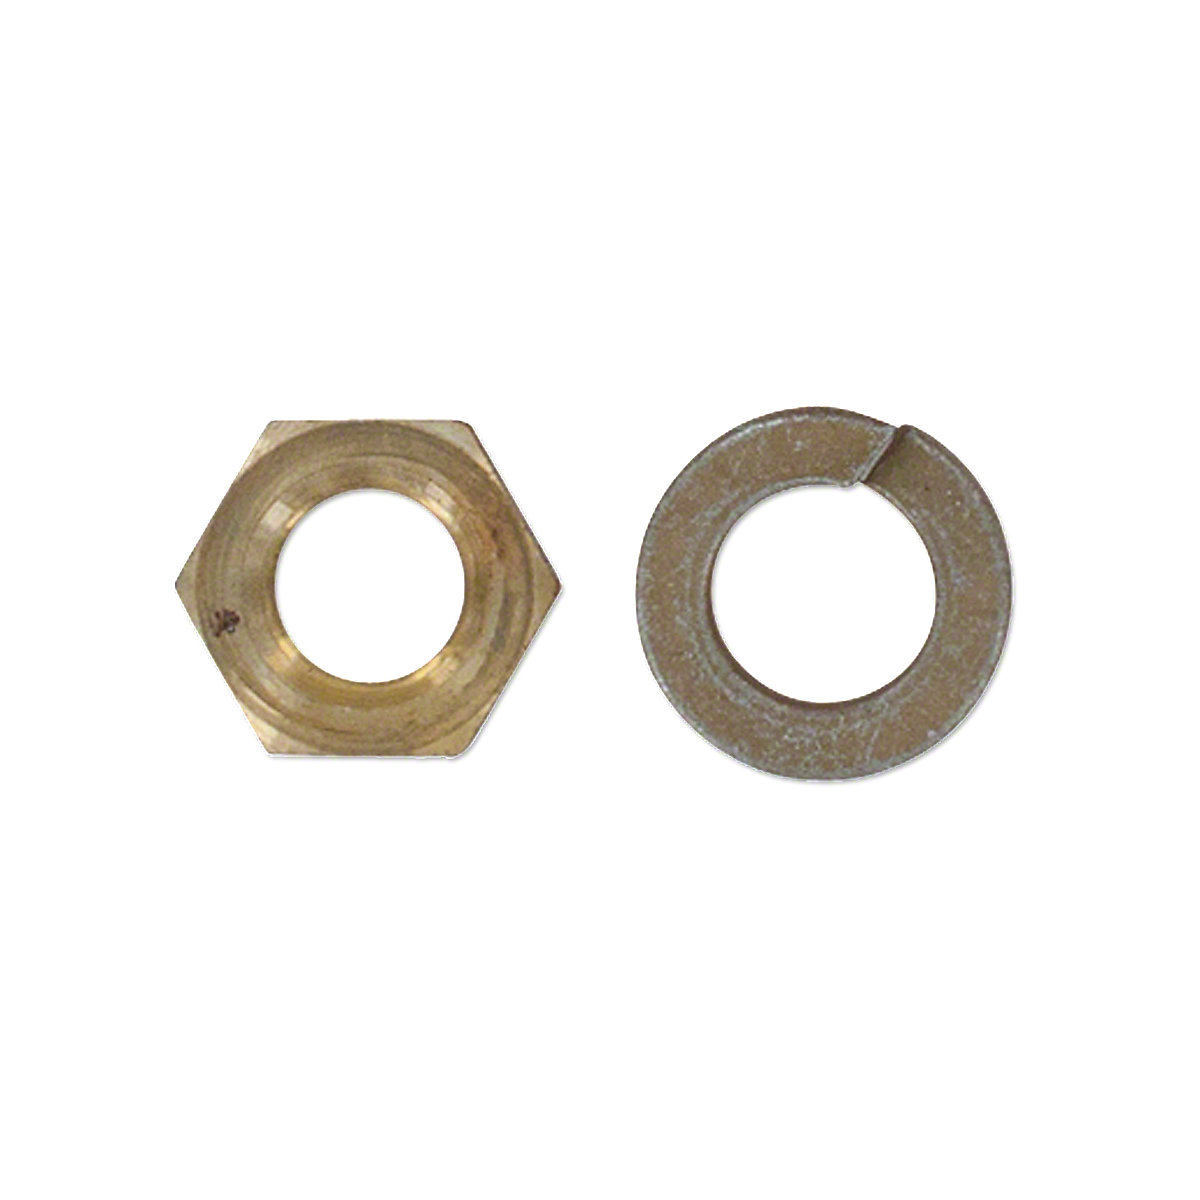 Brass Manifold Nut And Lockwasher For Allis Chalmers D15 Diesel, I60, D17 Gas/LP/Diesel, 170, 175 Gas&LP